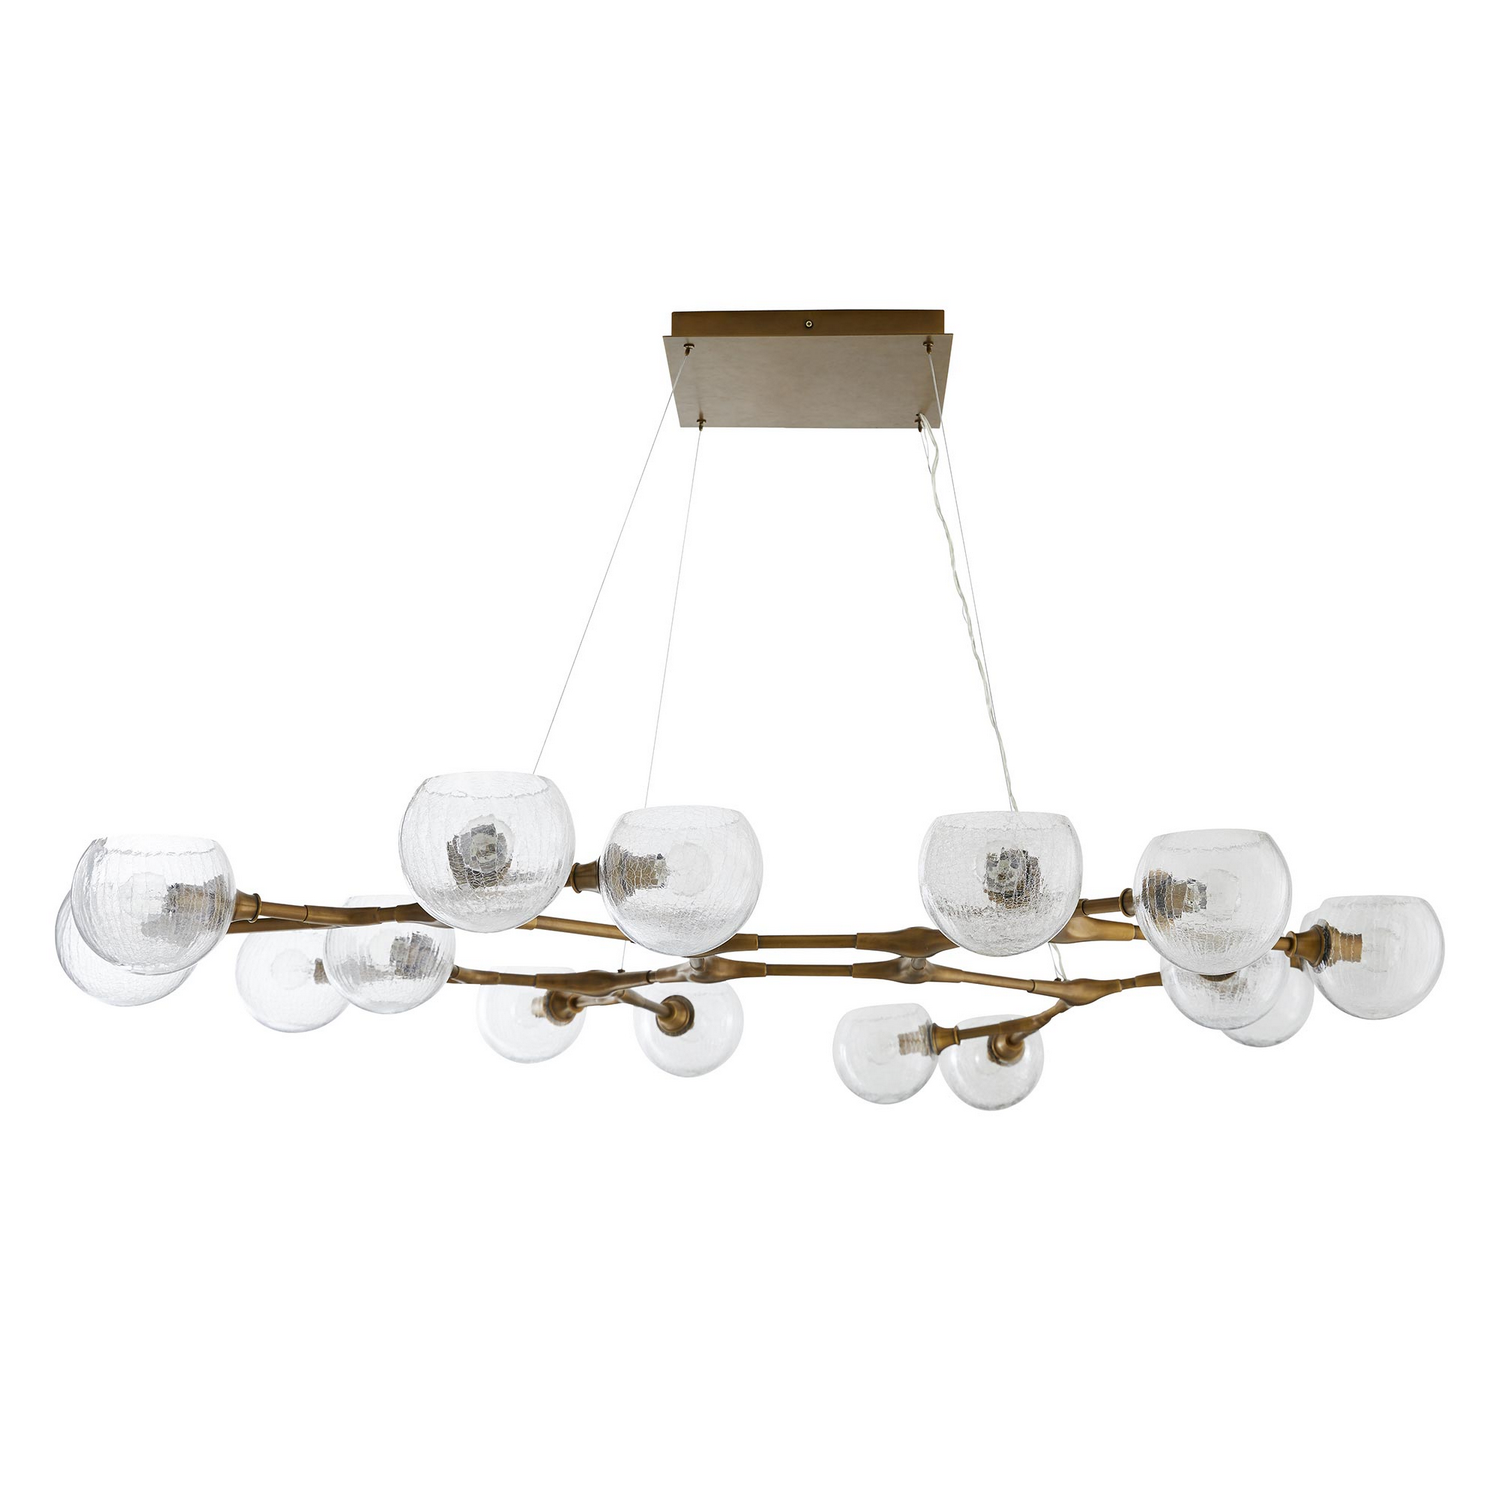 16 Light Chandelier by Arteriors 89103